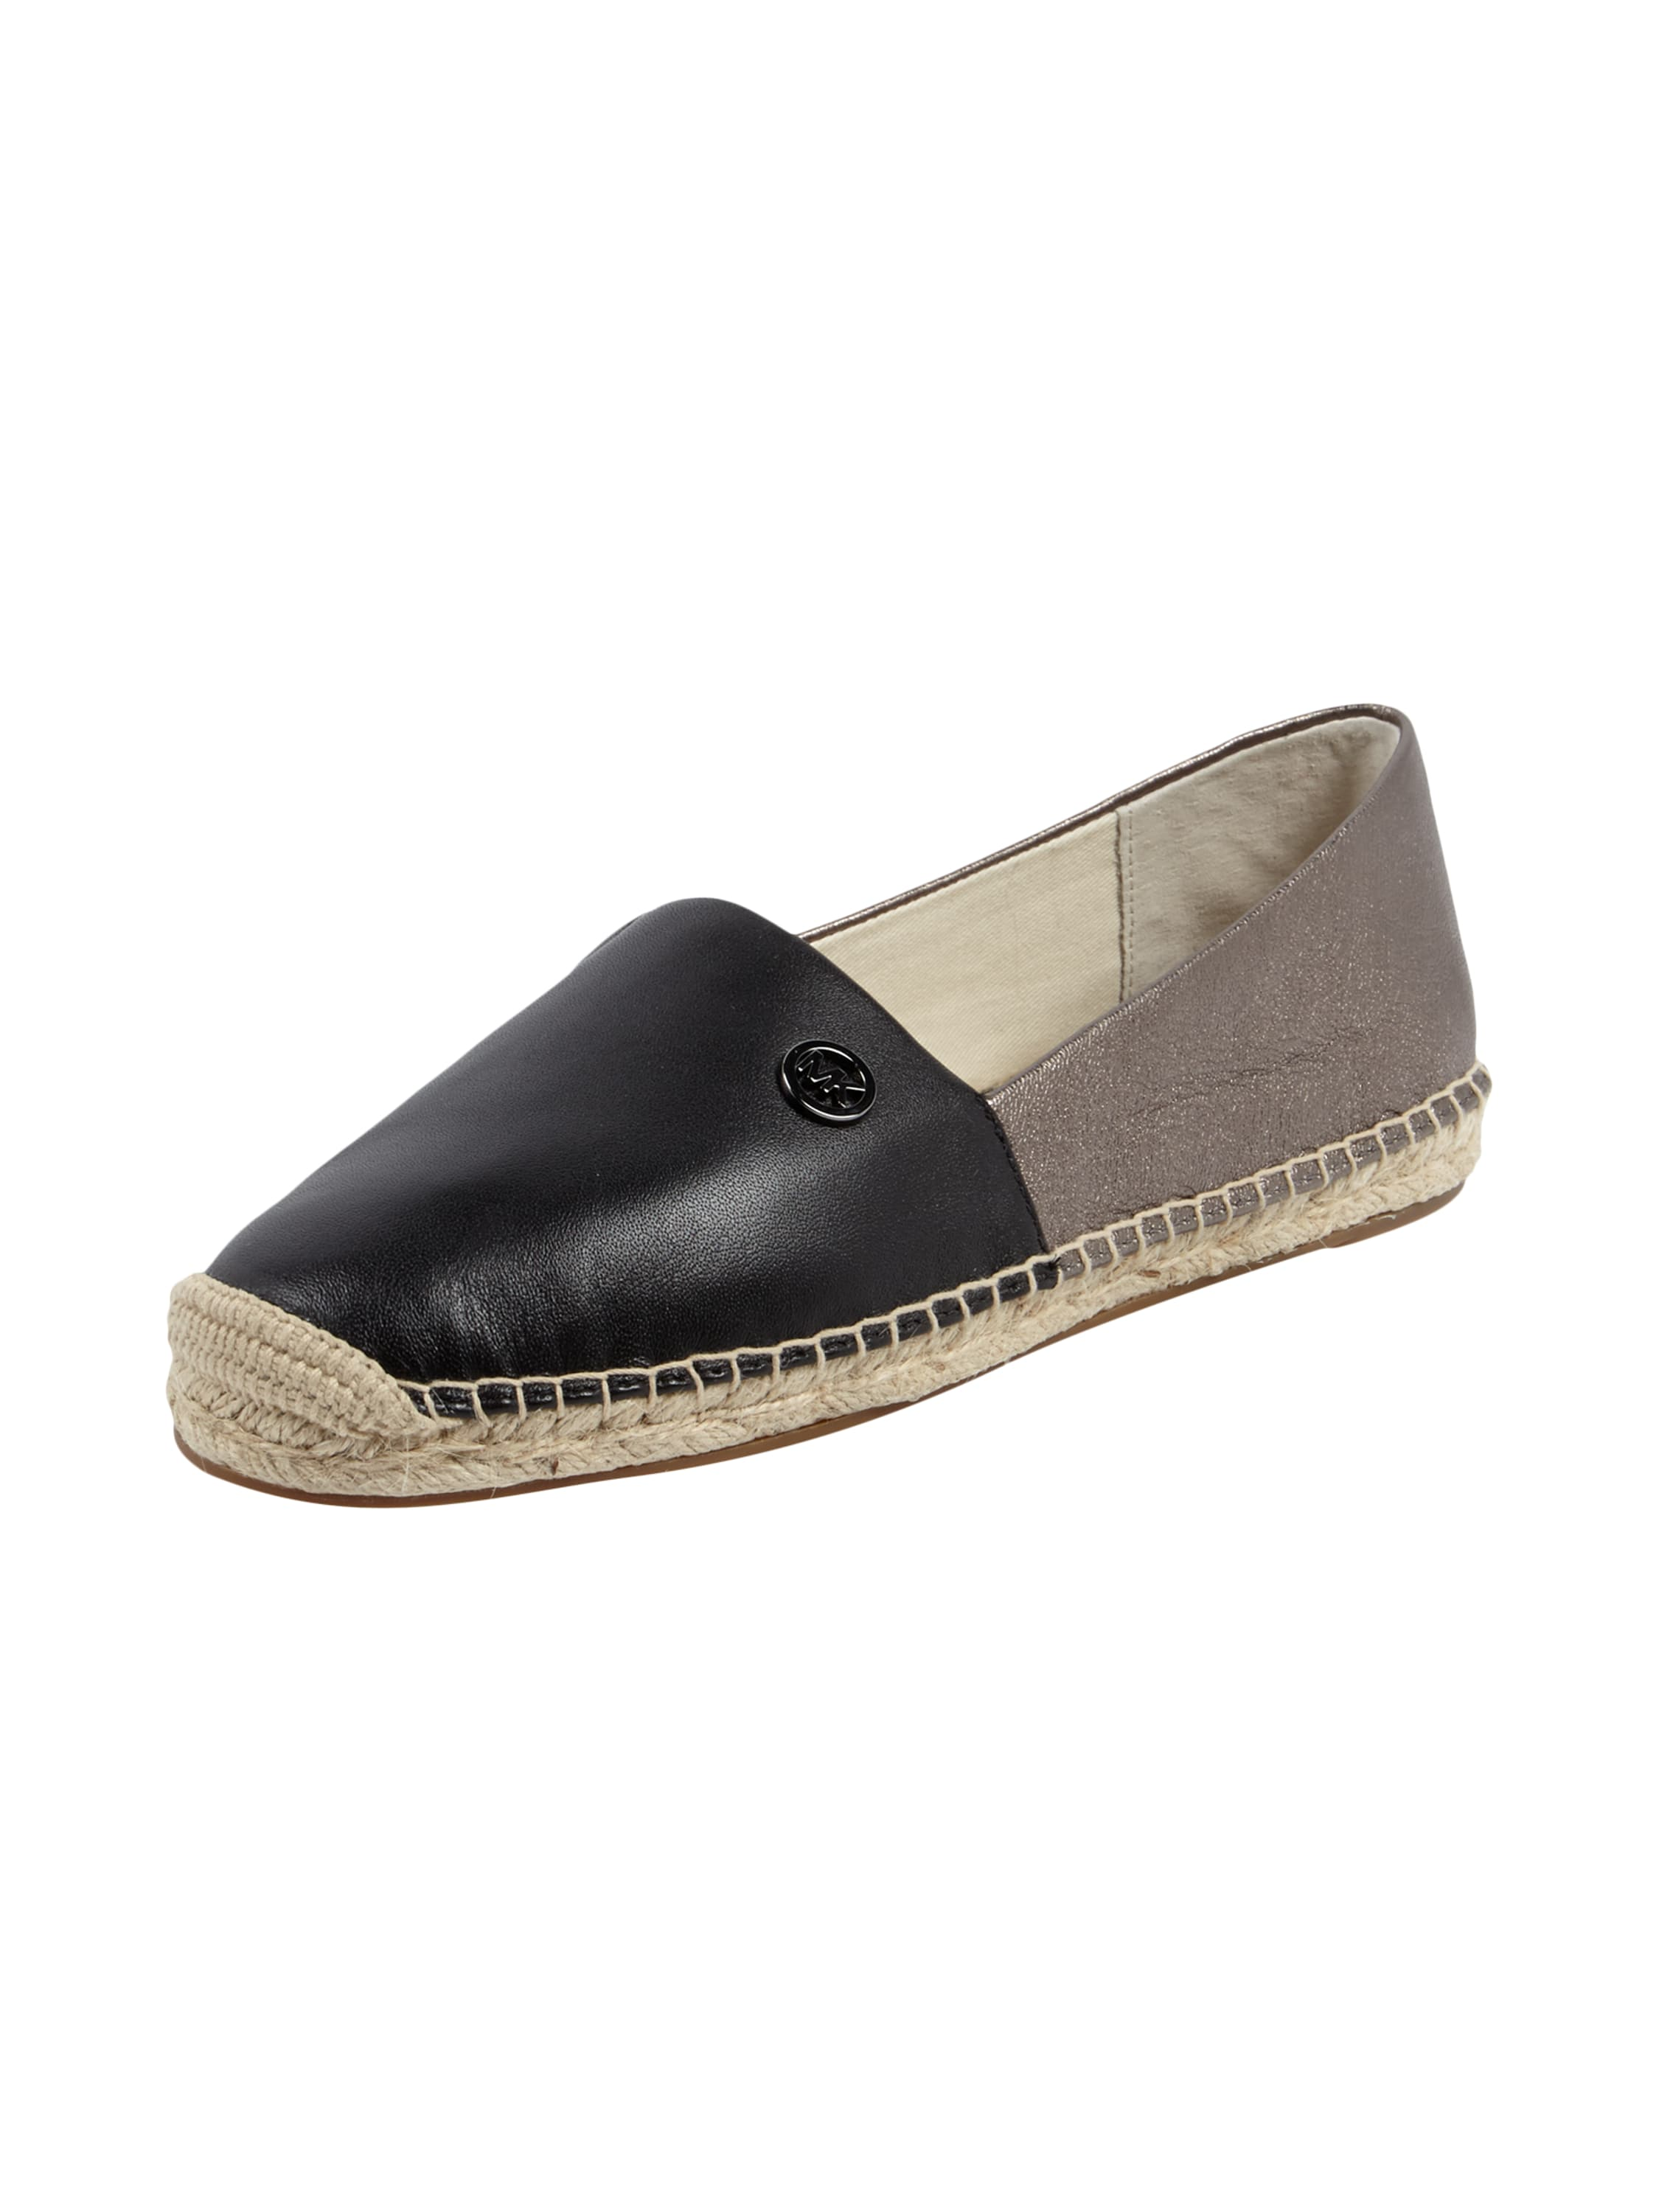 michael michael kors espadrilles aus leder in grau schwarz online kaufen 9365948 p c at. Black Bedroom Furniture Sets. Home Design Ideas